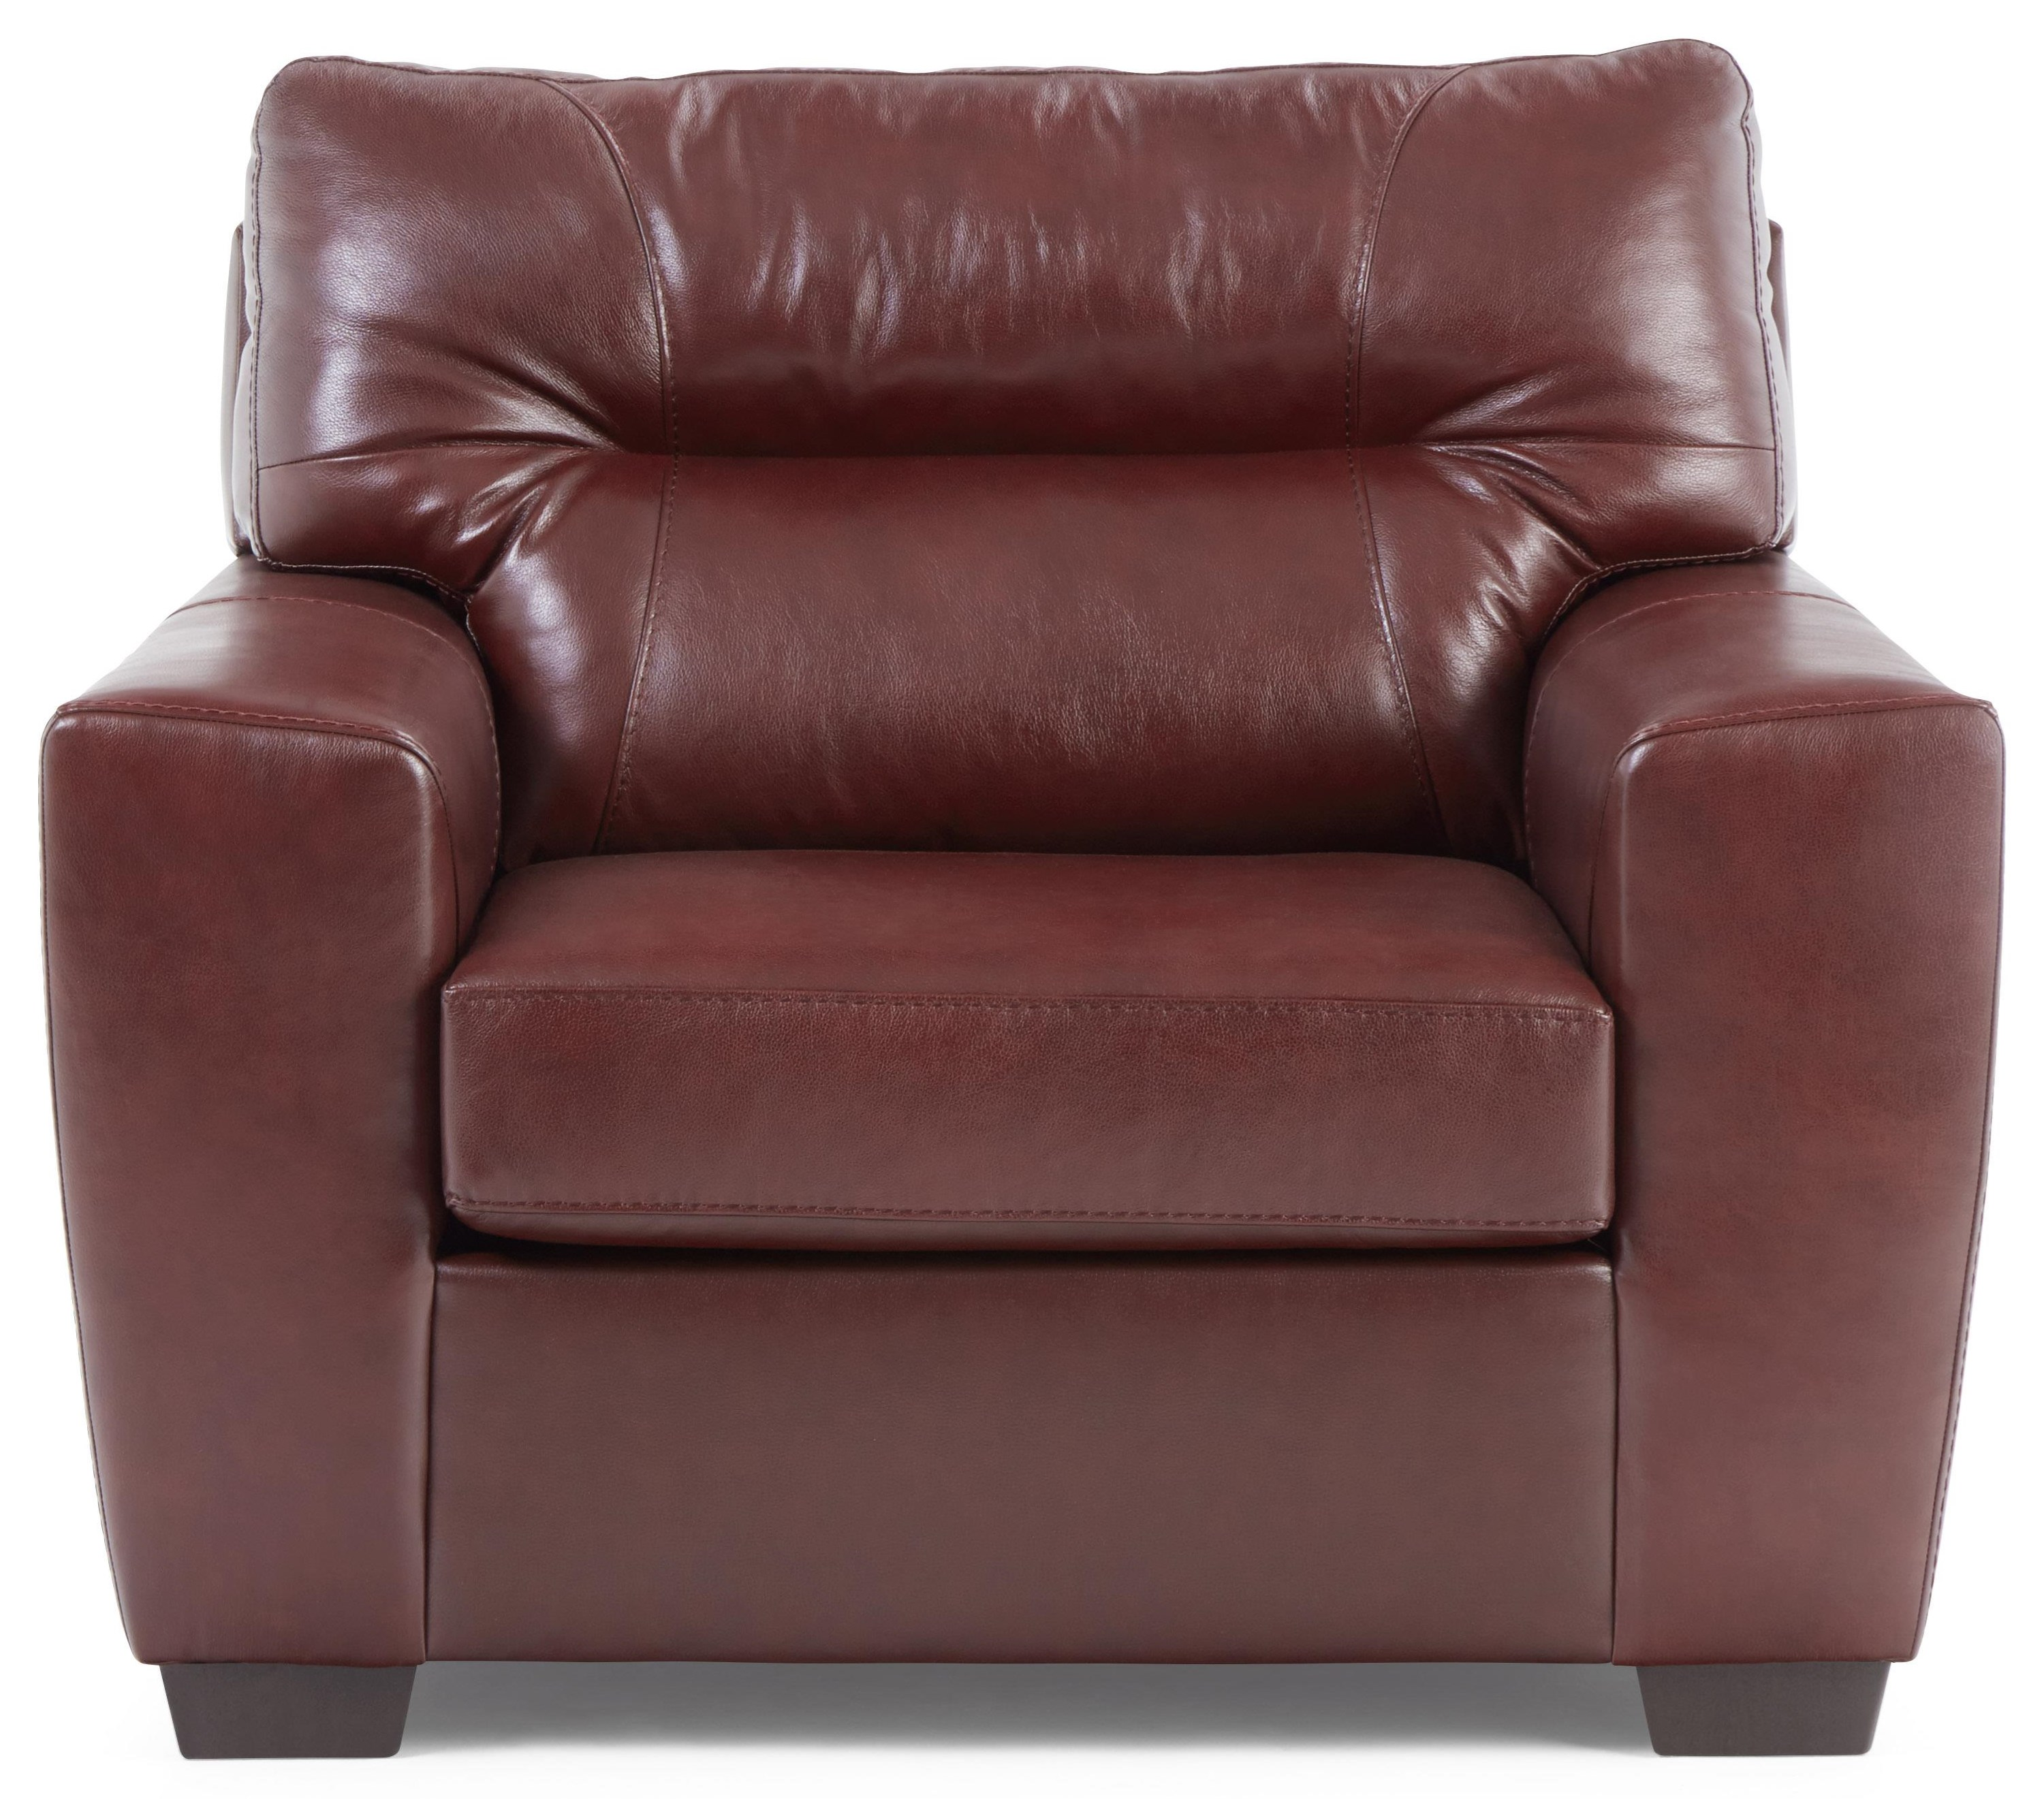 Noah Leather Match Chair